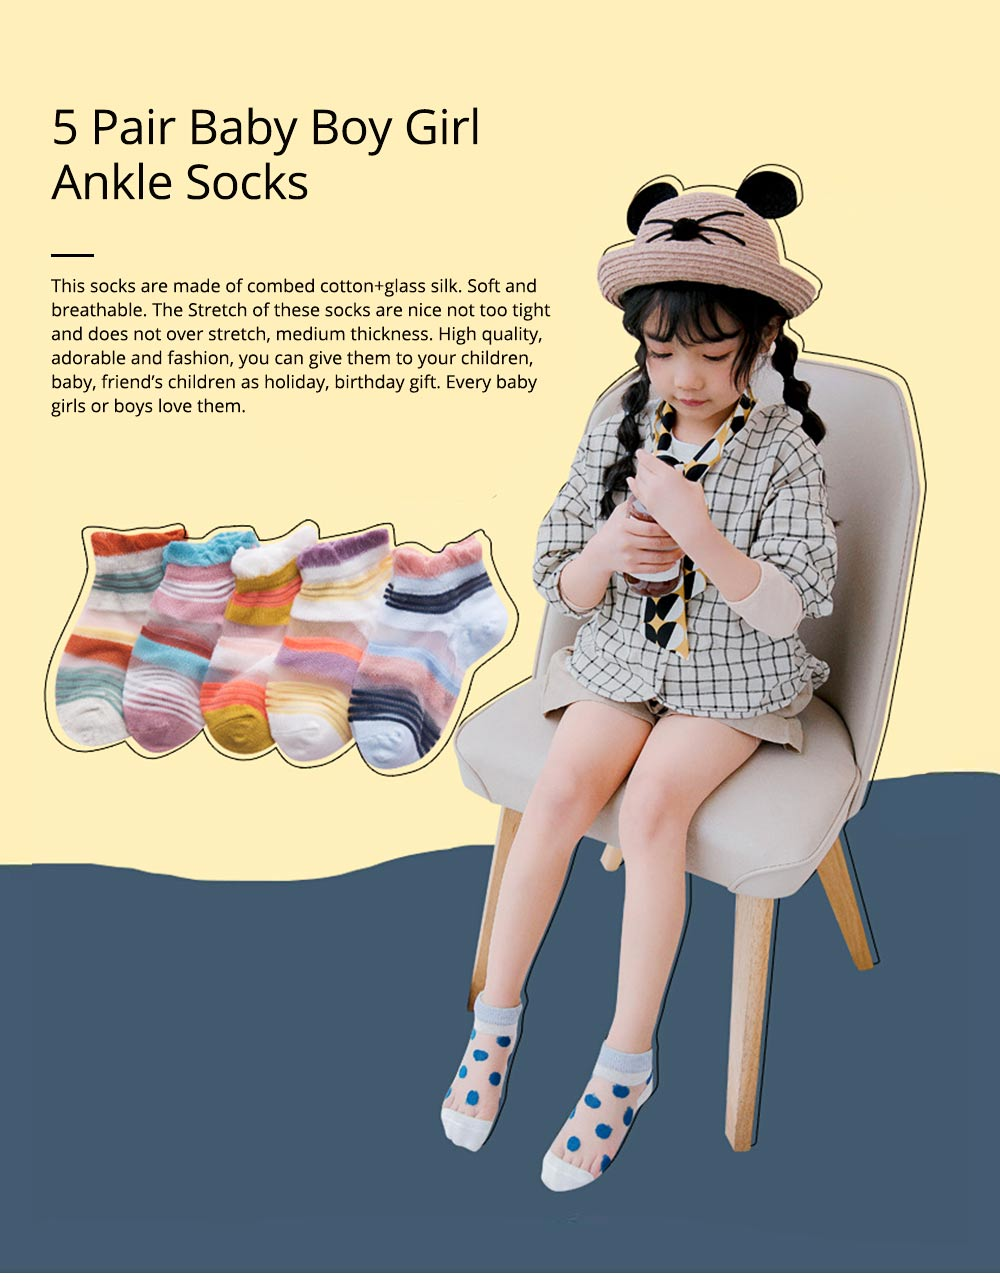 5 Pairs Baby Boy Girl Ankle Socks, Anti Slip Non Skid Breathable Cotton Summer Socks, Cute Cat Pattern Kids Accessories 0